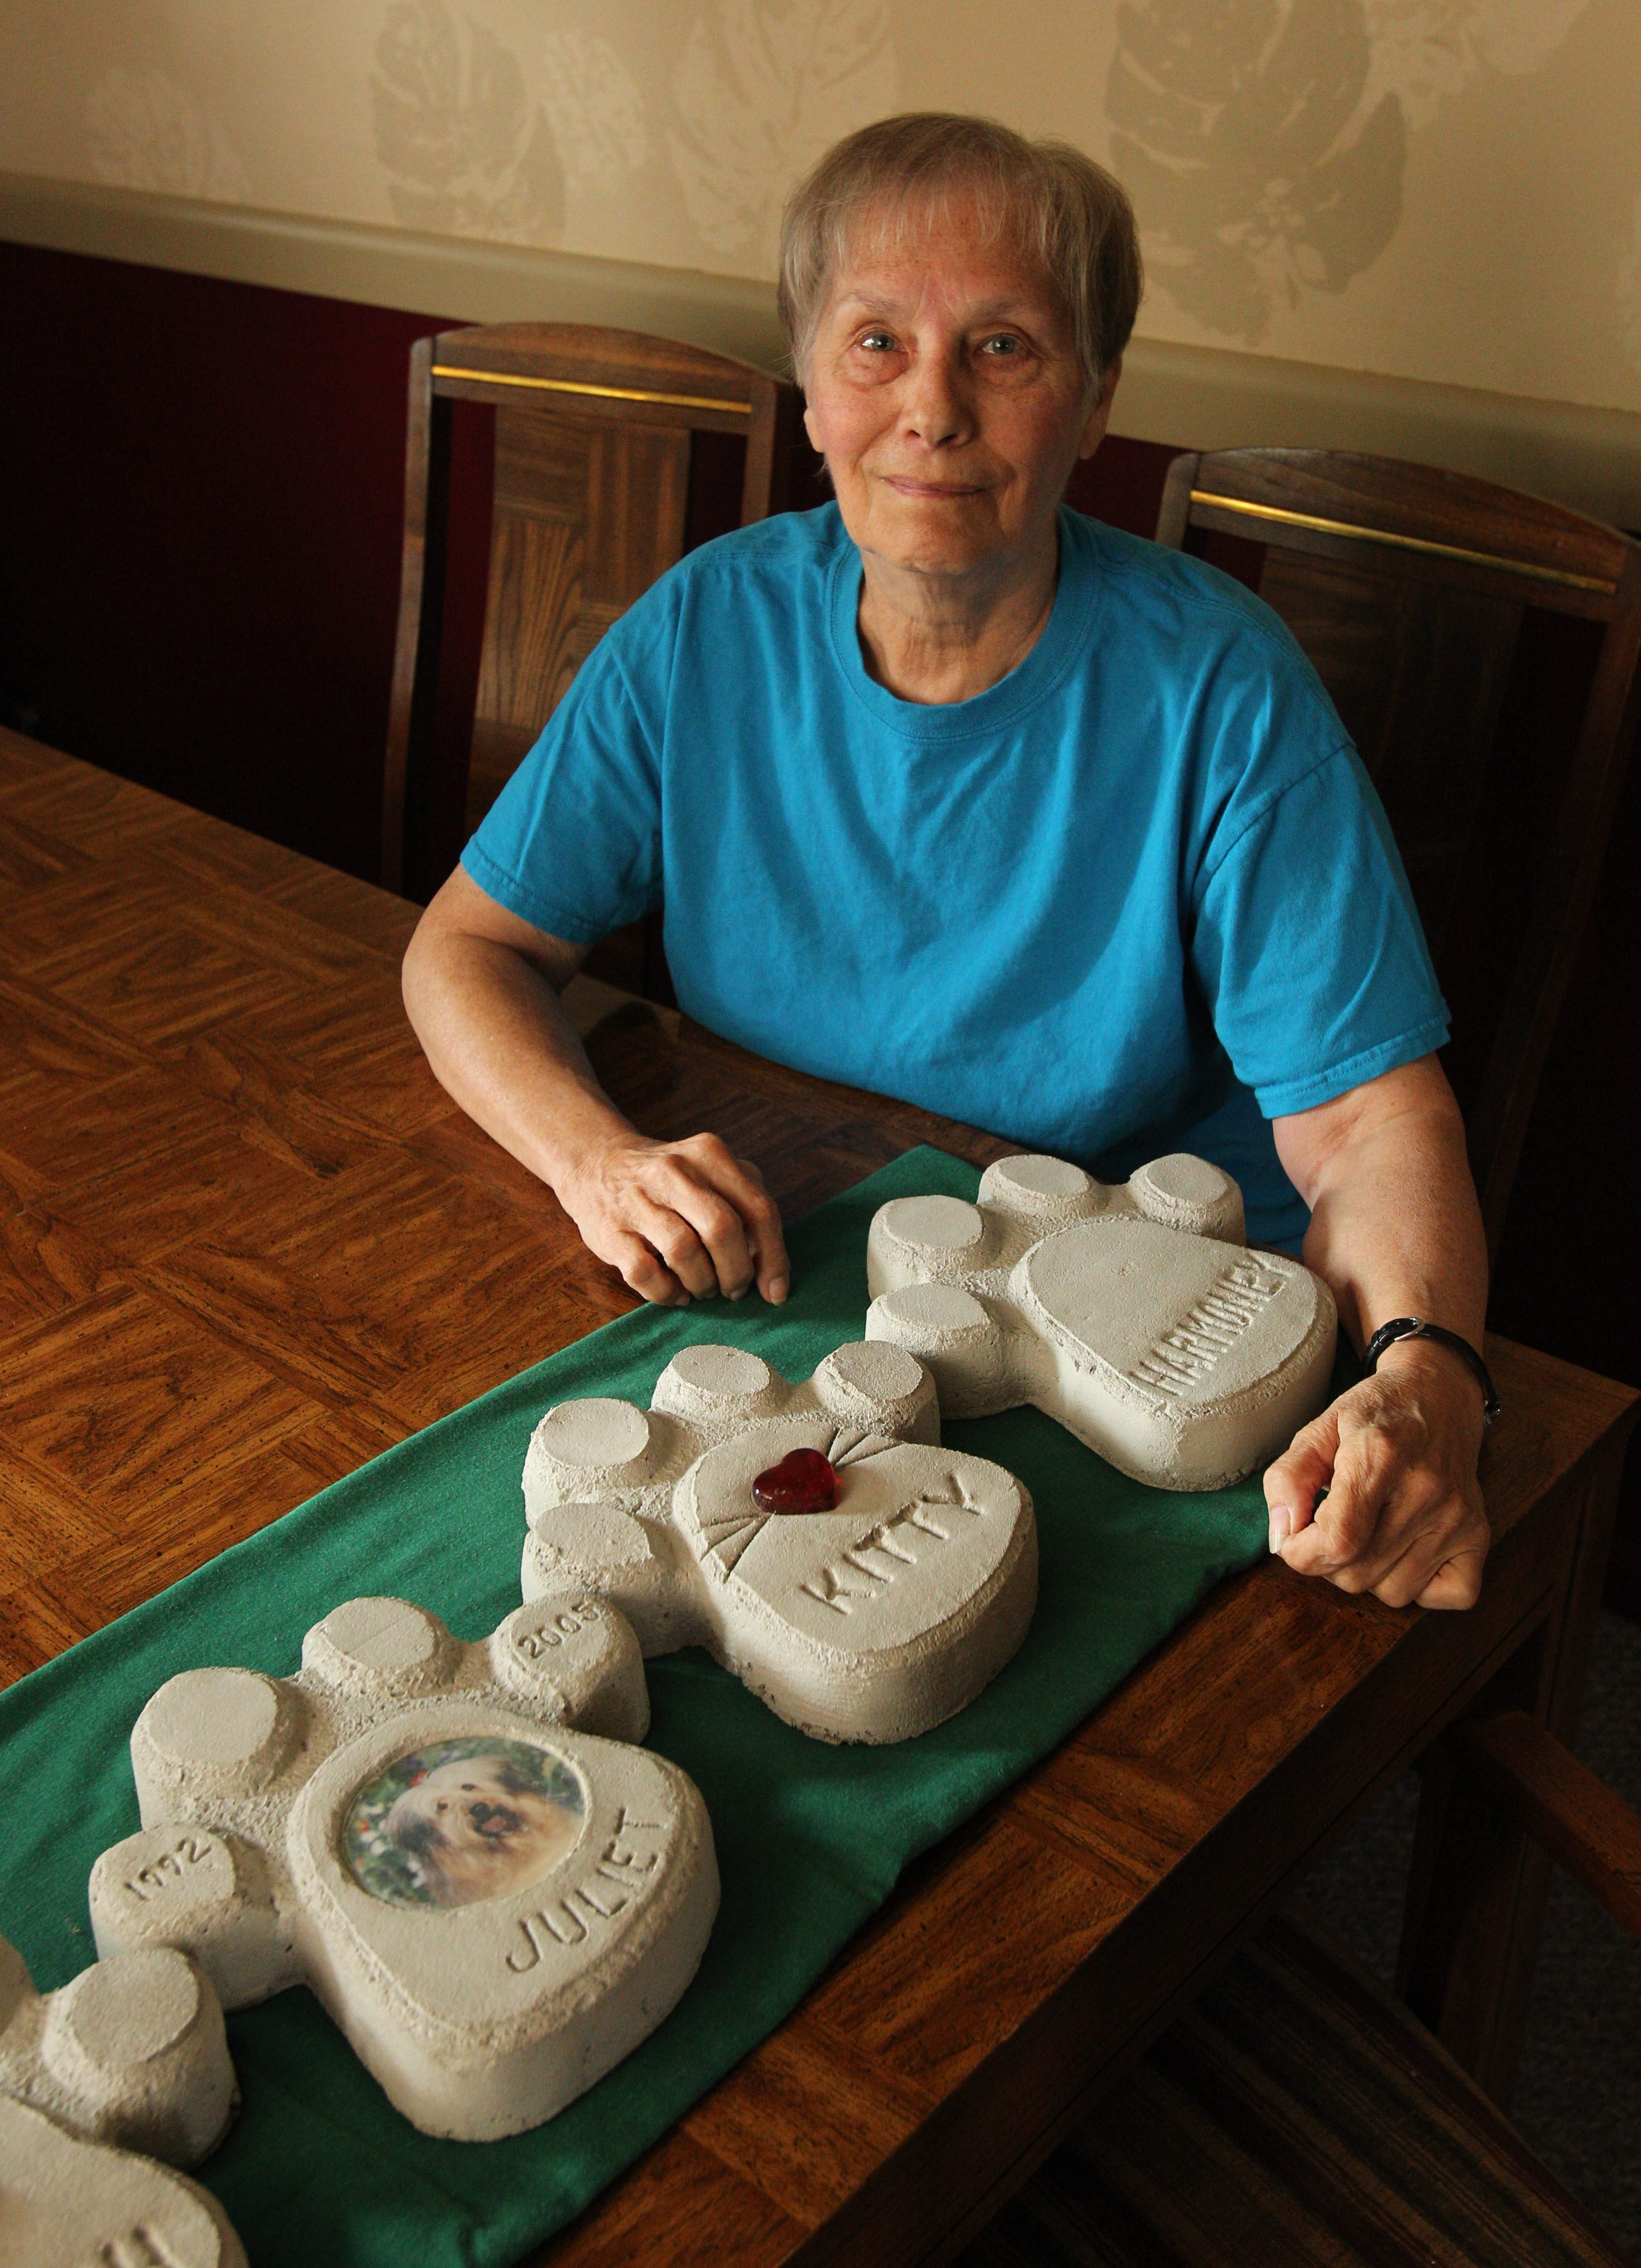 Mary VandenBergh has donated all the plaque proceeds to the Pet Emergency Fund.